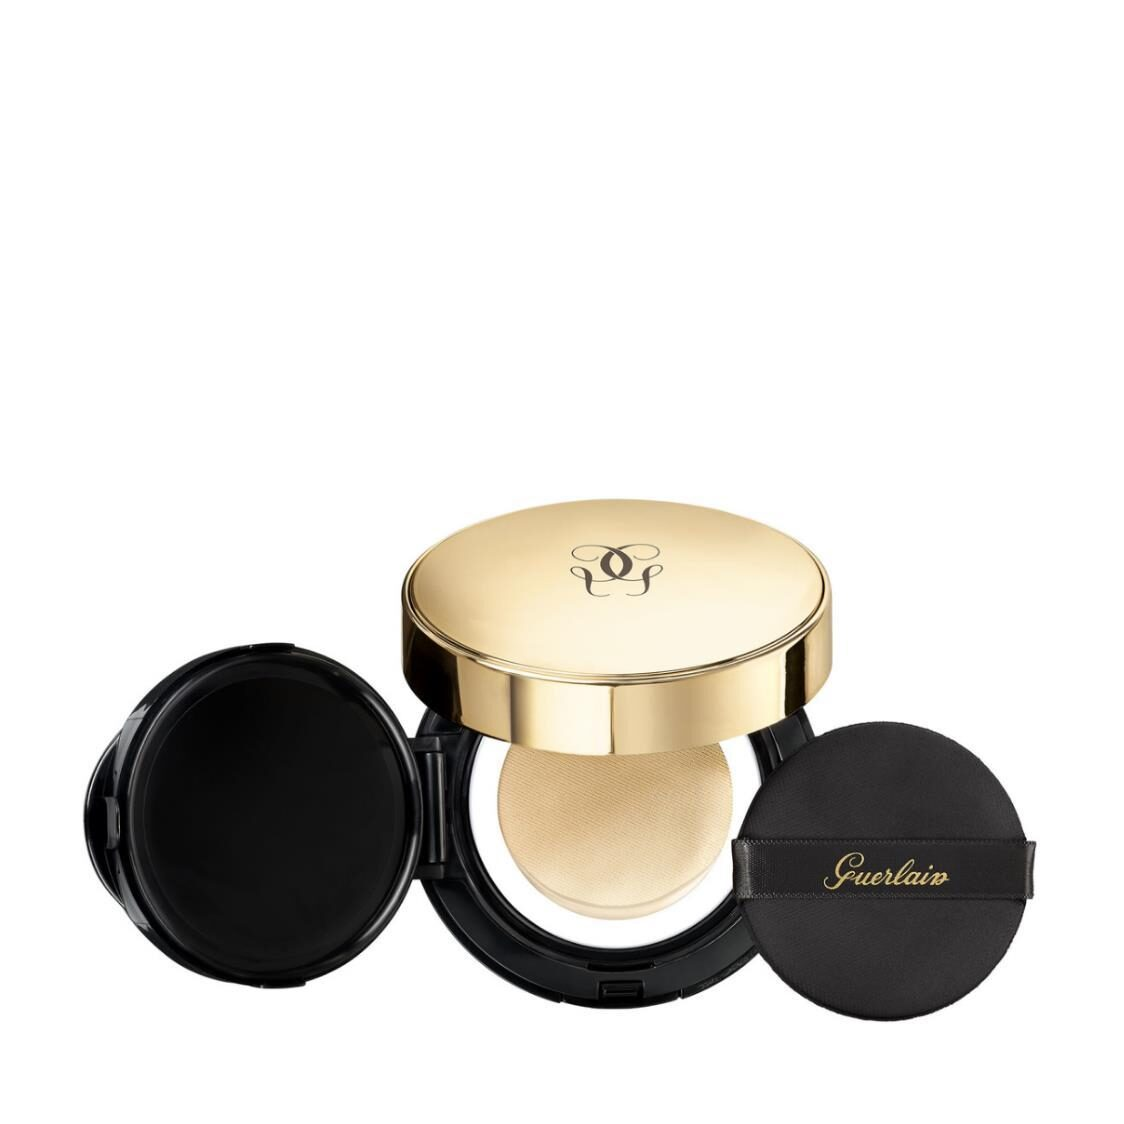 Parure Gold Cushion Foundation